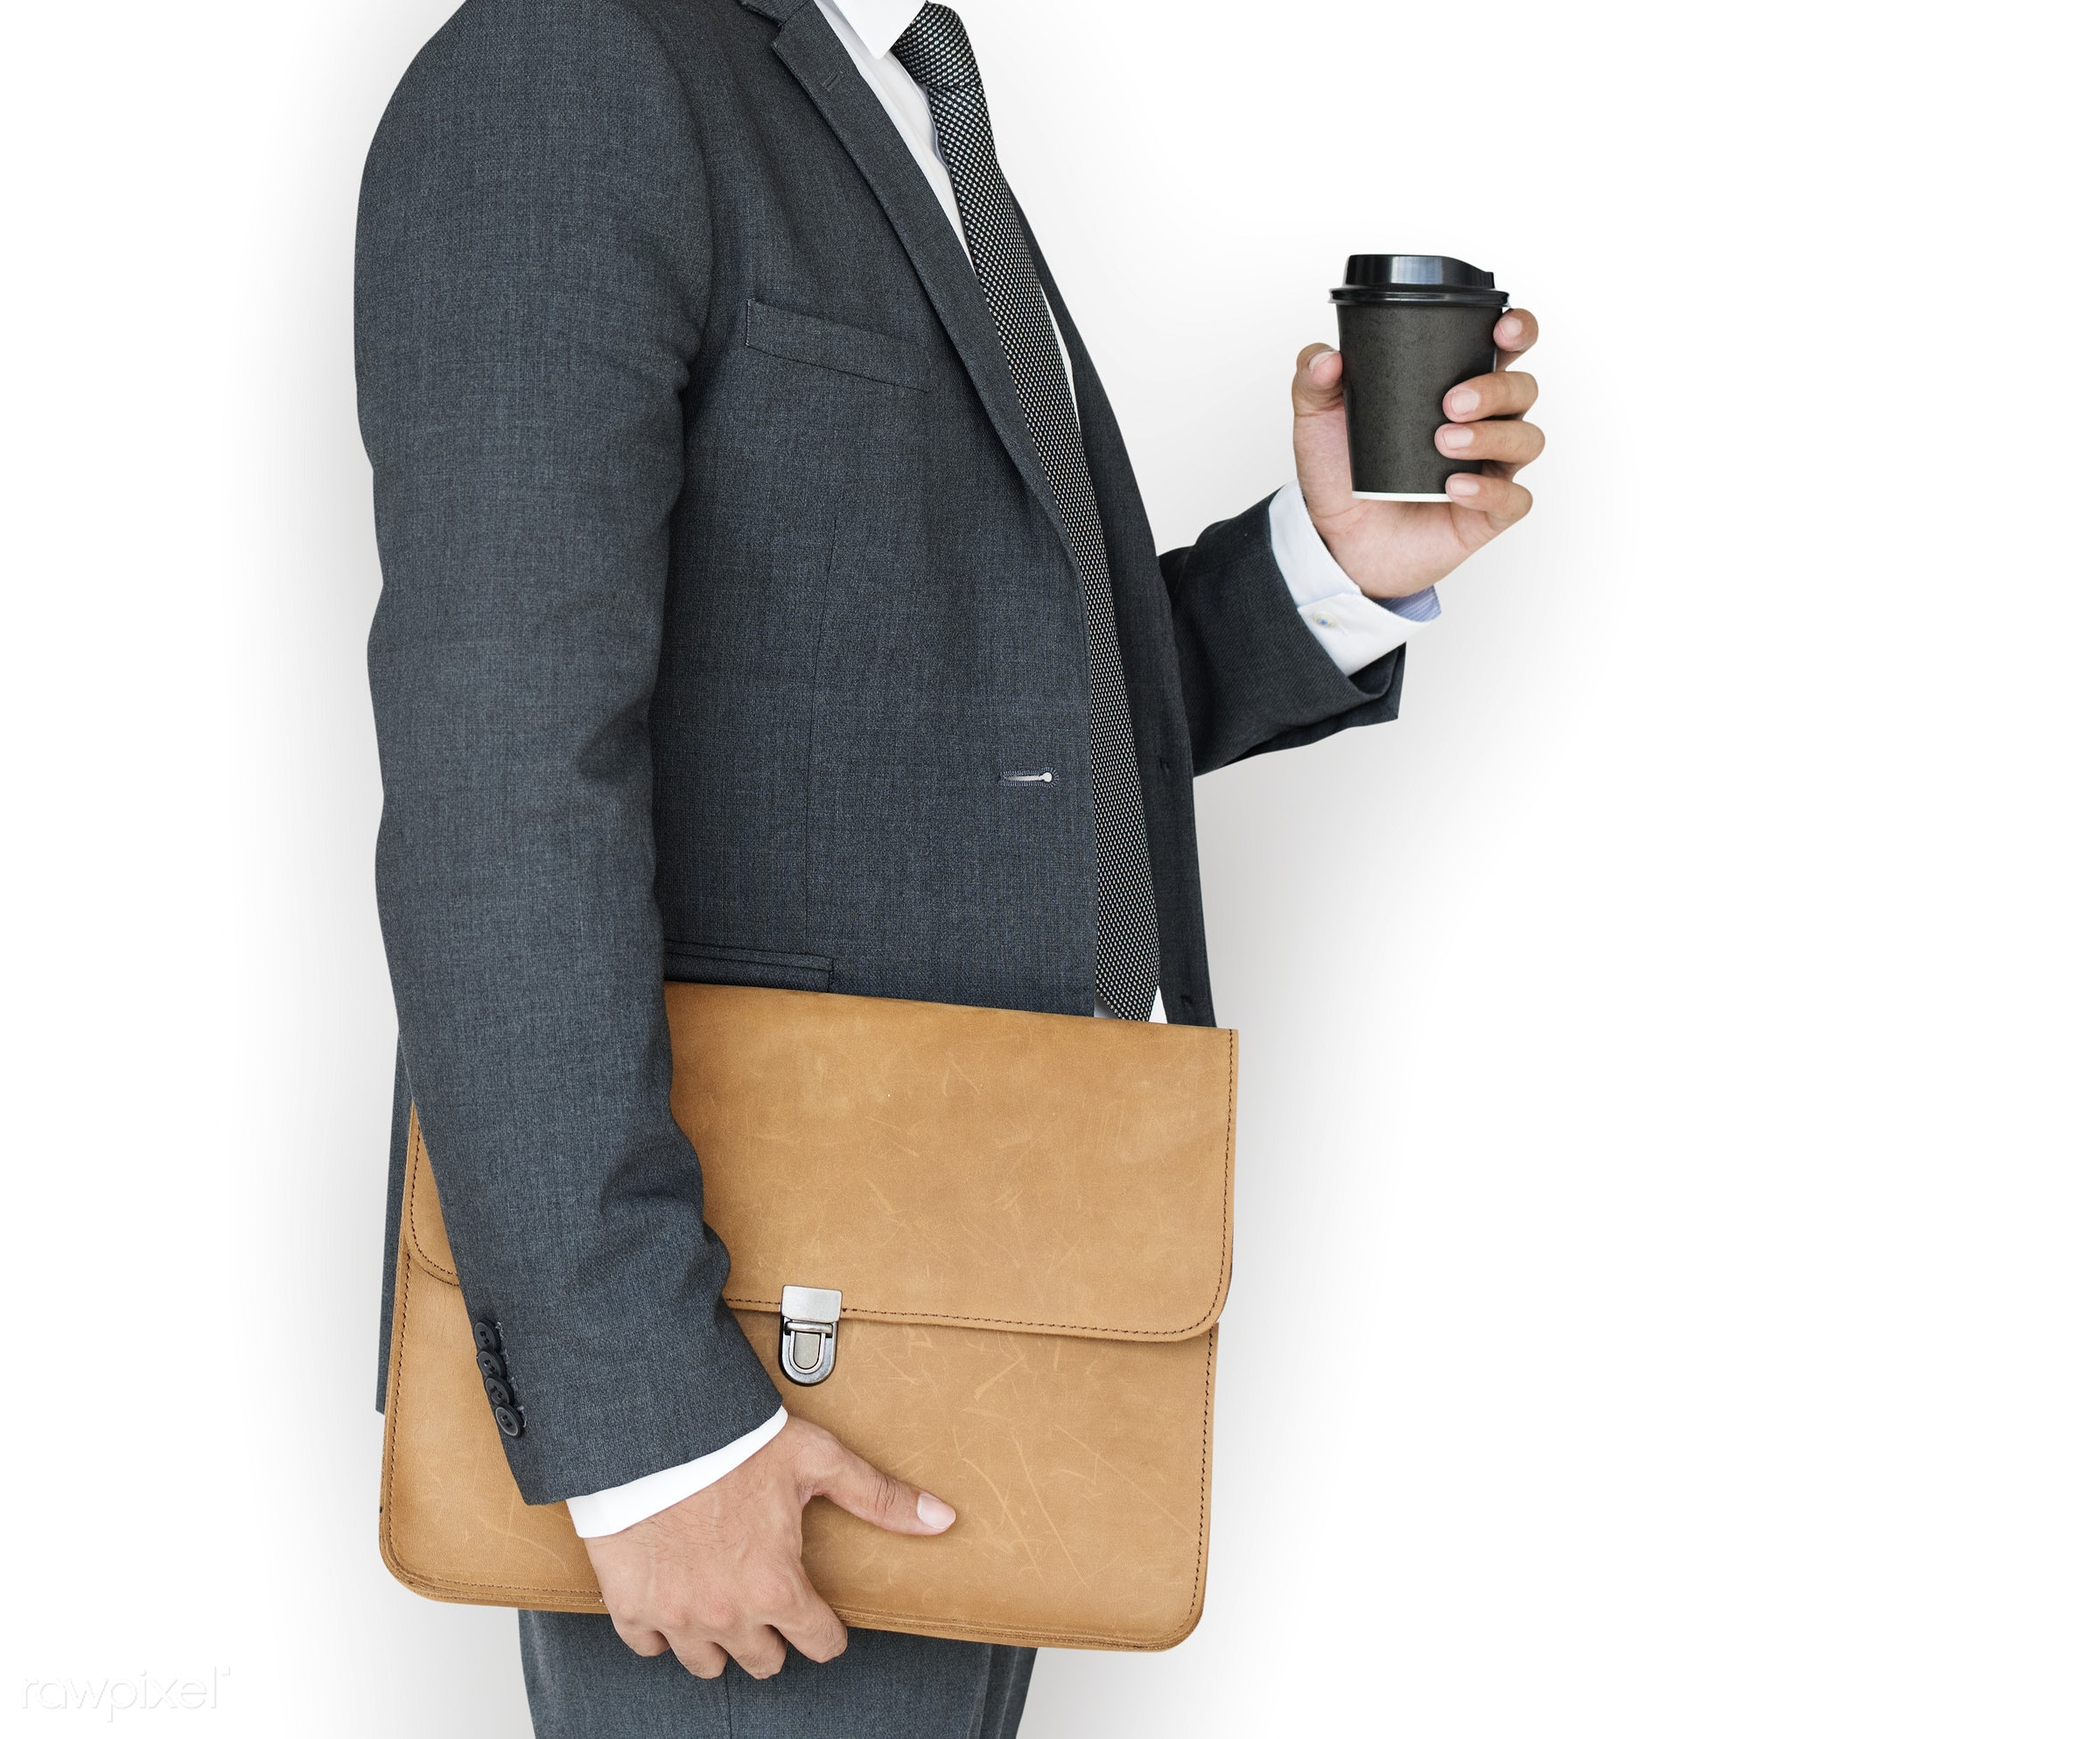 expression, studio, person, business wear, messenger bag, isolated on white, side view, people, business, side, holding...